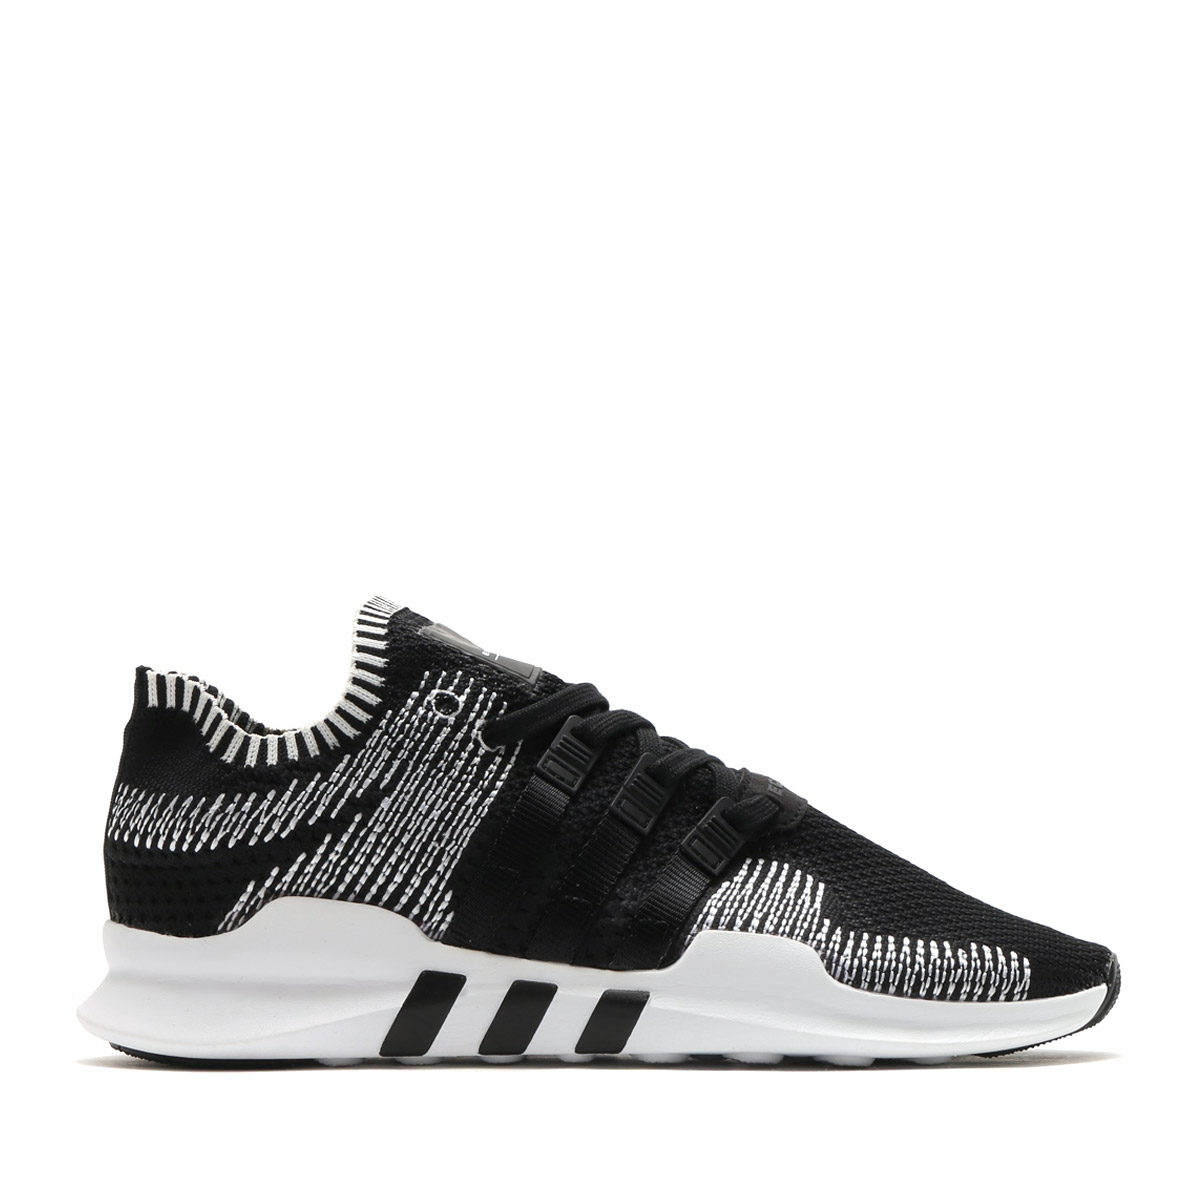 adidas Originals EQT SUPPORT ADV PK (アディダス オリジナルス EQT サポートADV PK)CORE BLACK CORE  BLACK RUNNING WHITE メンズ スニーカー 17FW-S-スニーカー 6d2be1f95